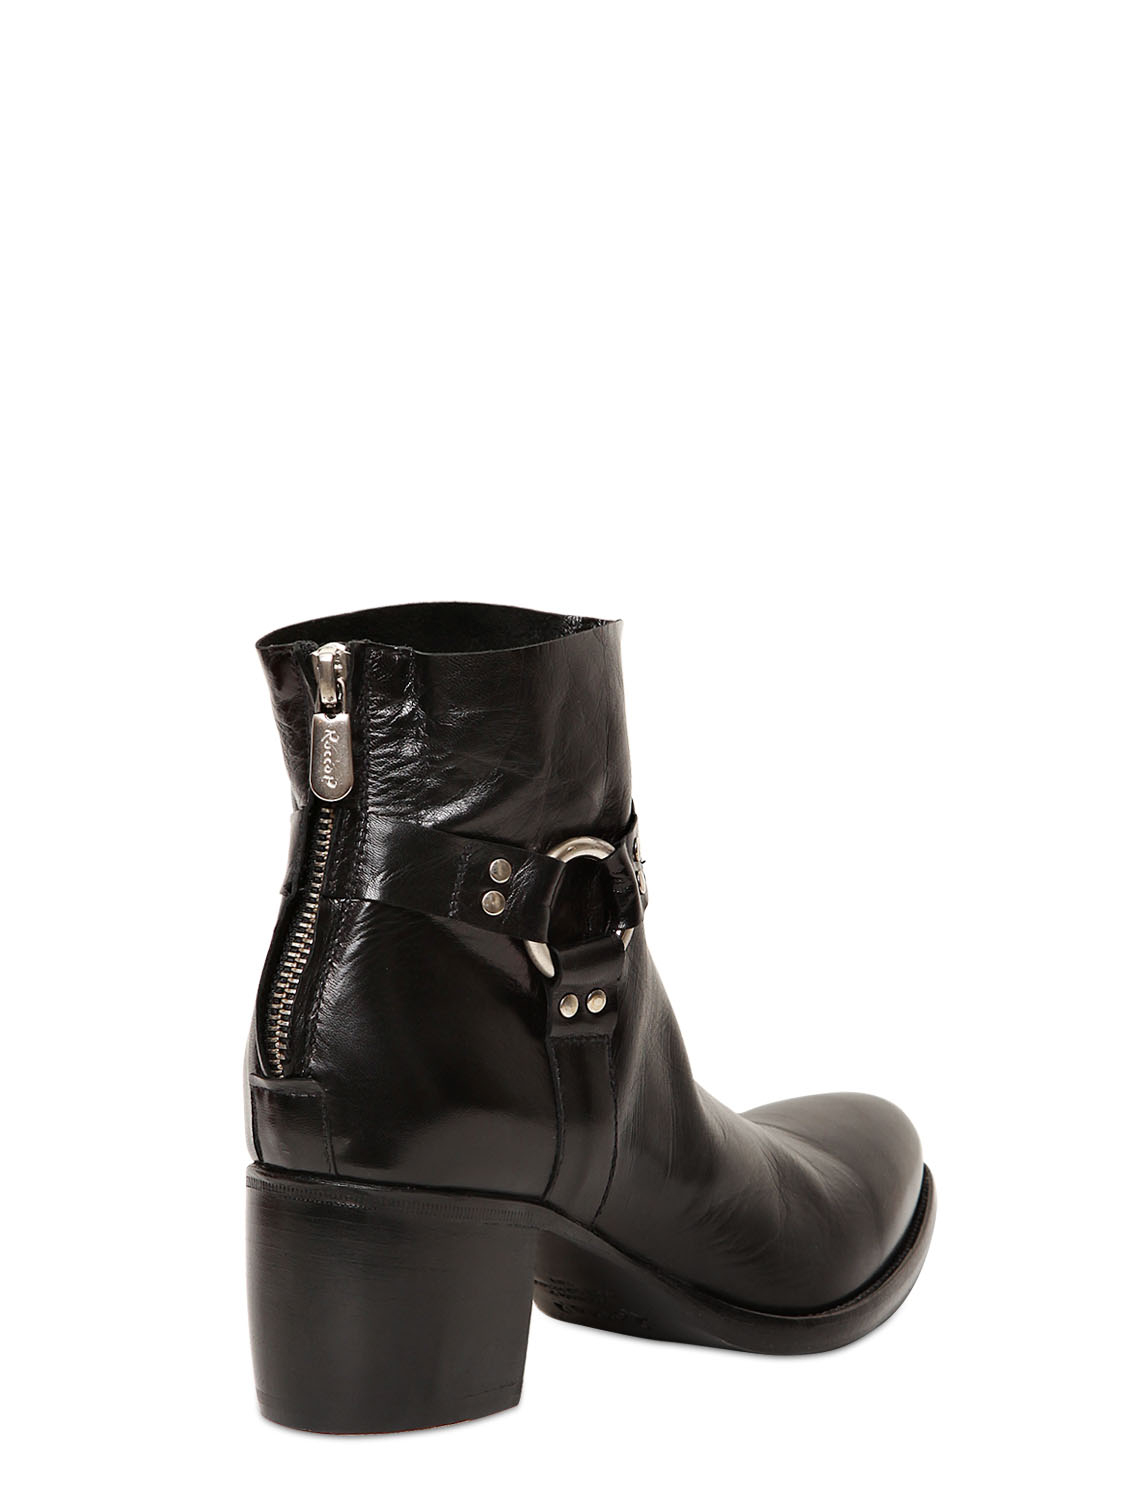 Rocco P 60mm Leather Belted Low Boots in Black